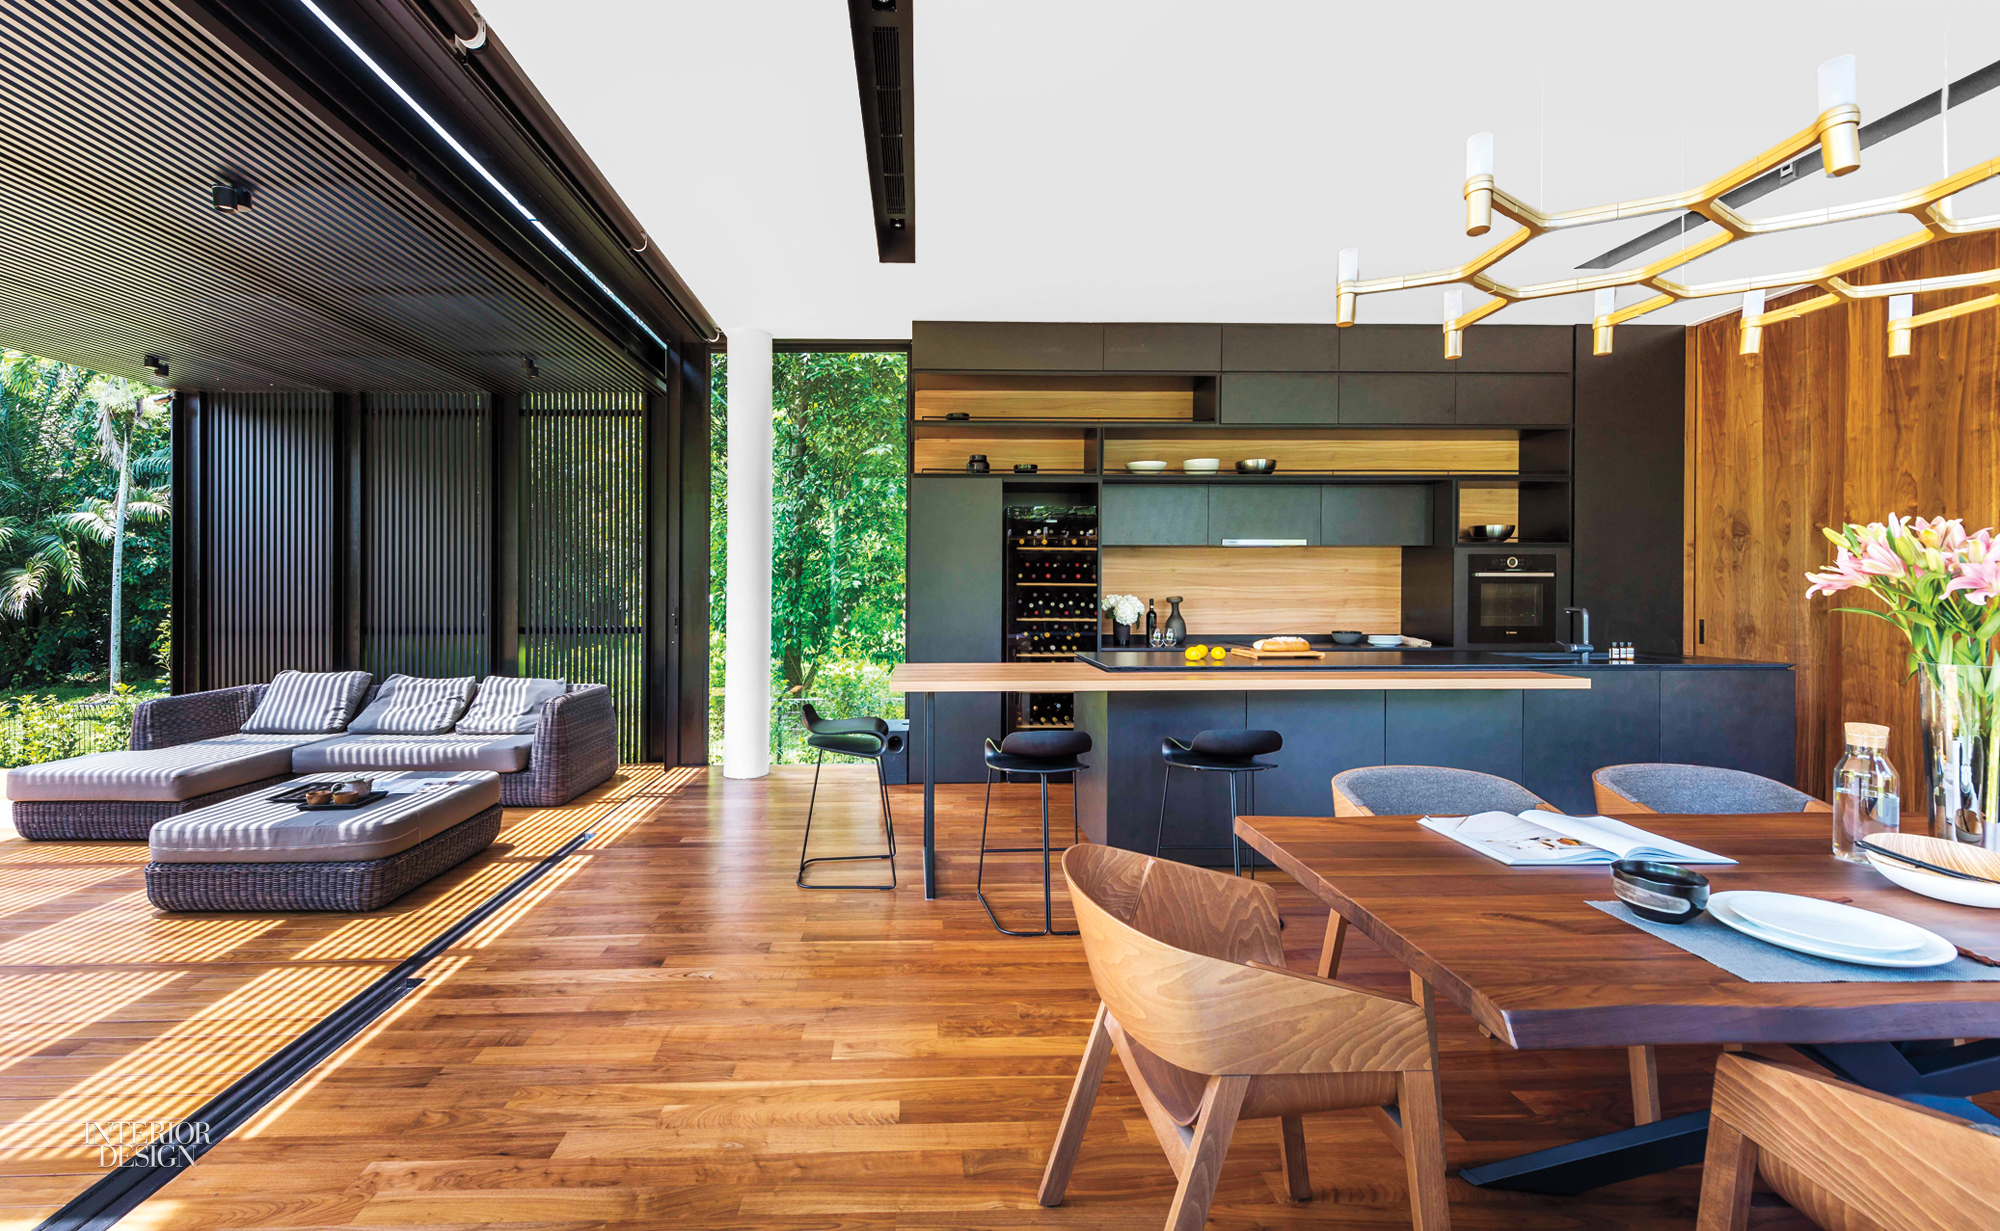 Park + ociates Architects: 2016 Best of Year Winner for City House  Home Interior Design Hardwood on home film 2016, home design trends 2016, home interior design 2015, home furniture 2016, home decorating 2016,